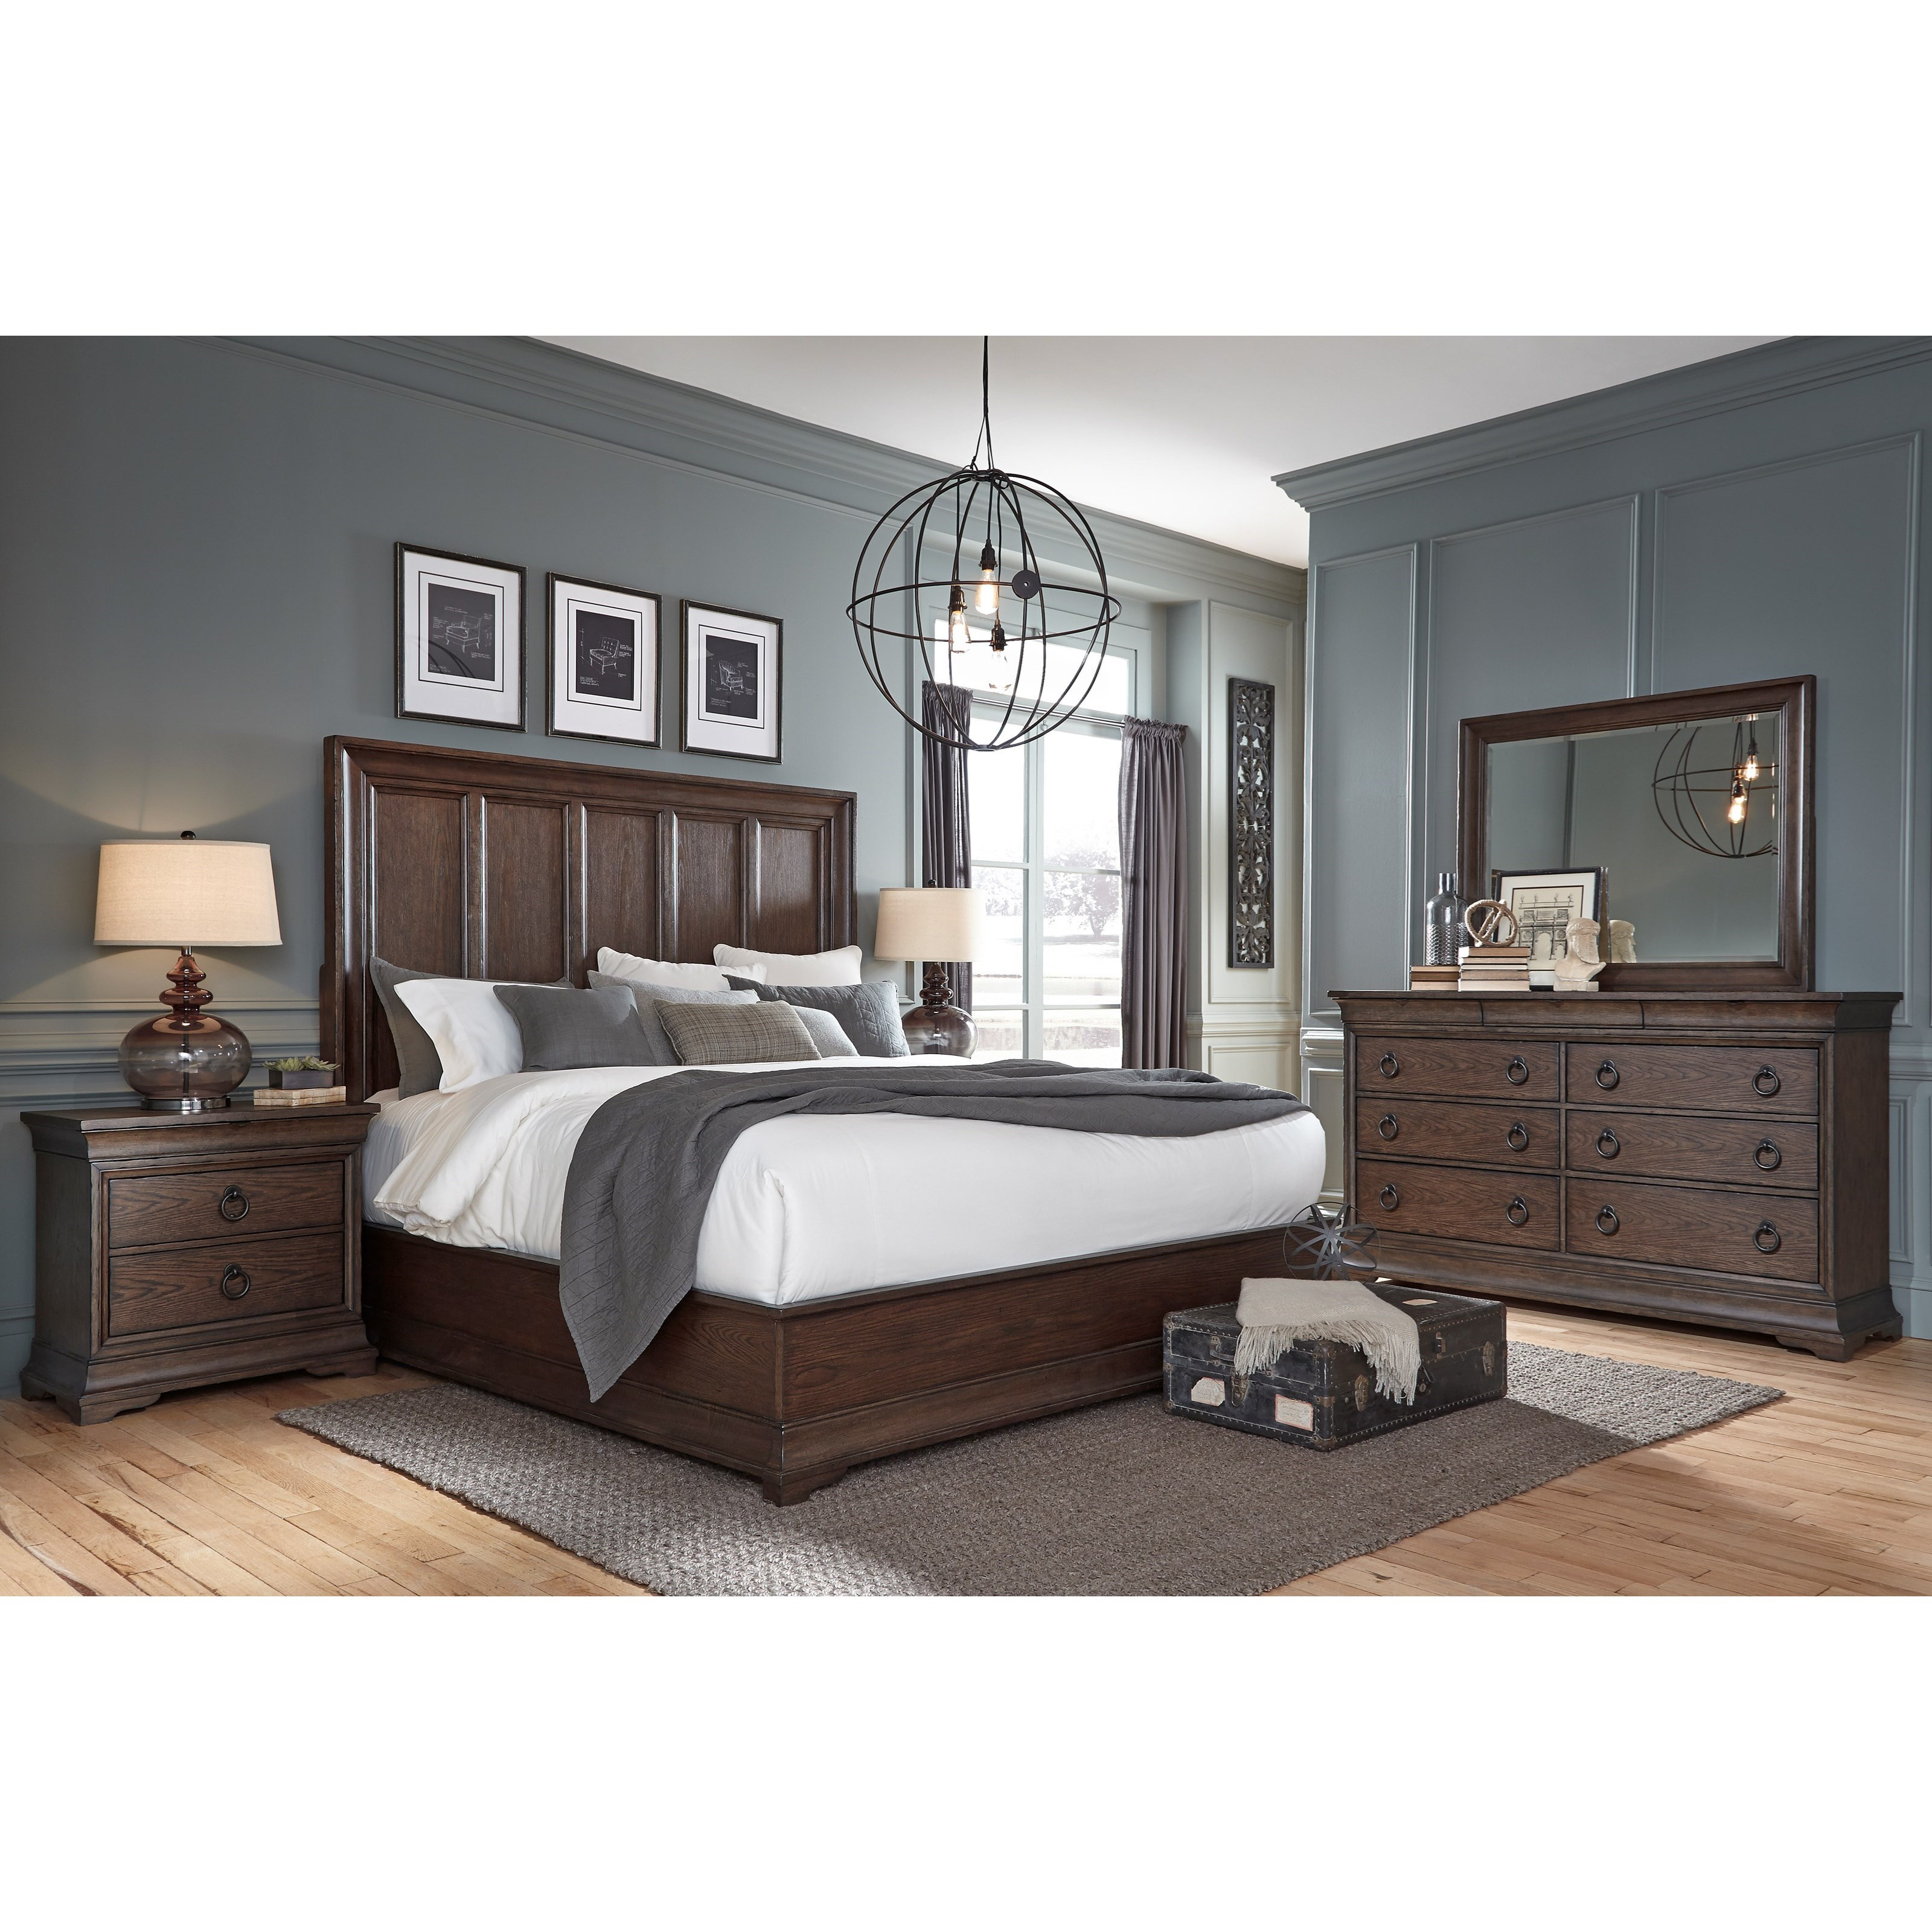 Pulaski Furniture Lindale King Bedroom Group - Item Number: P0301 K Bedroom Group 1